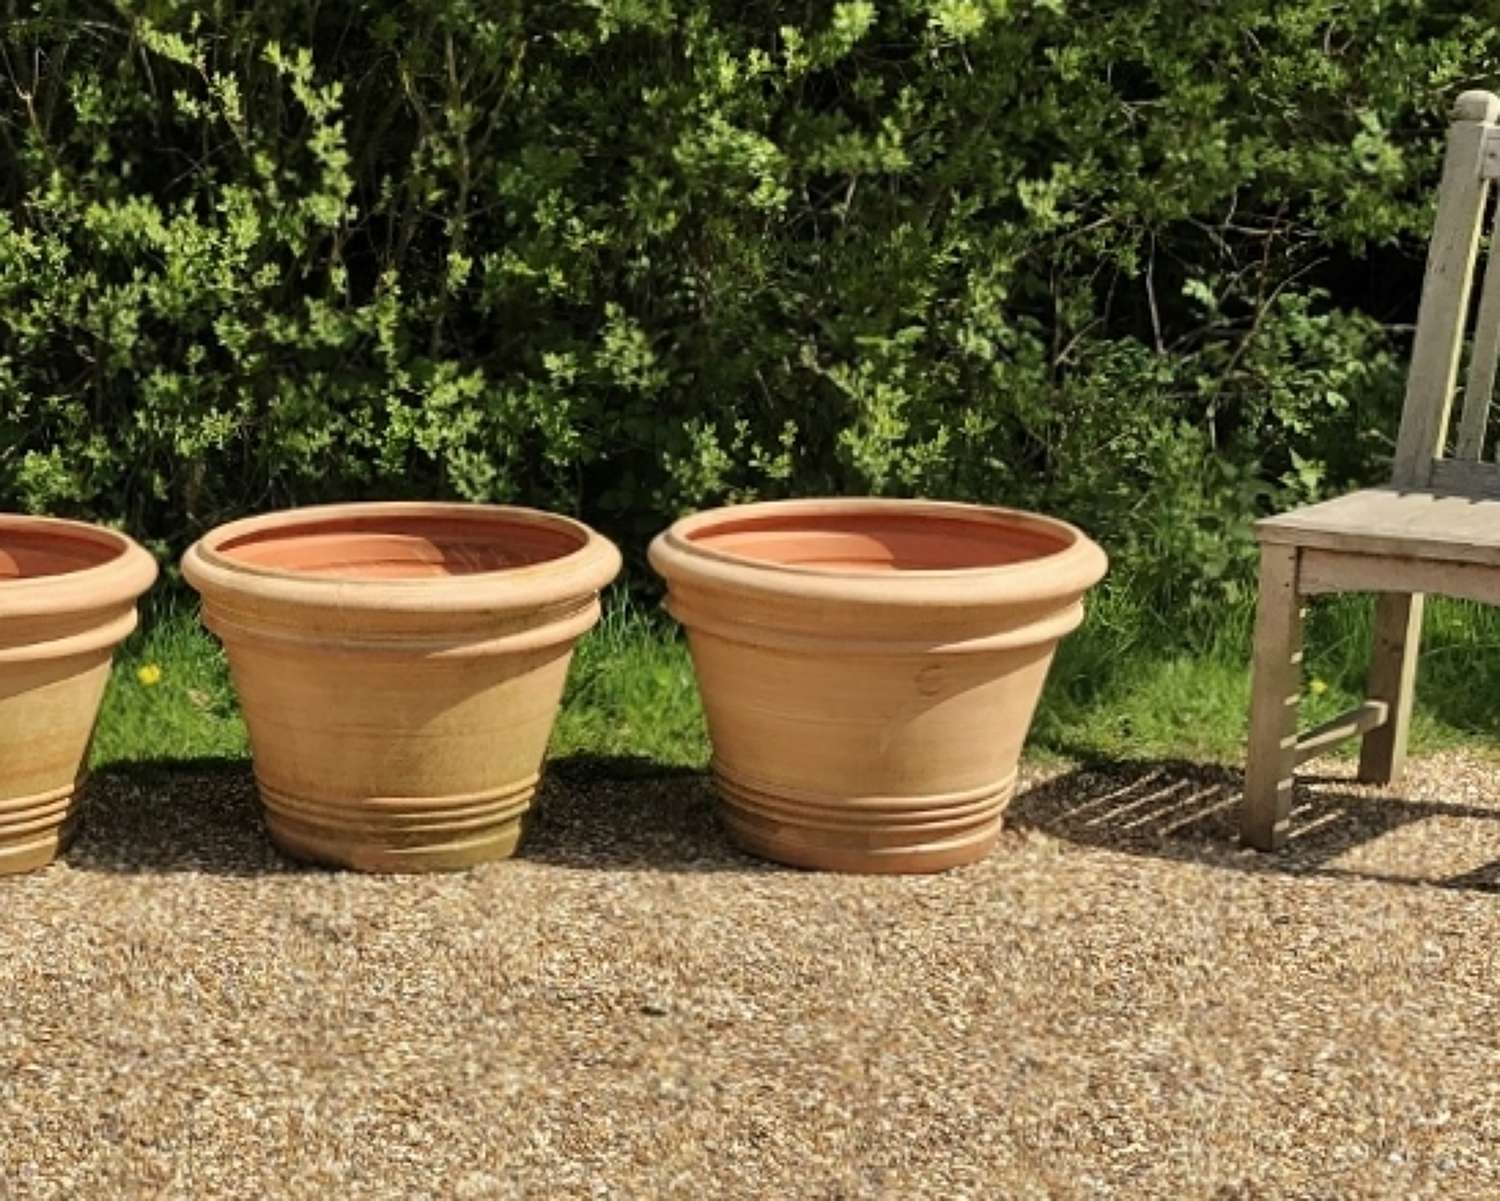 Pair of French Terracotta Planters